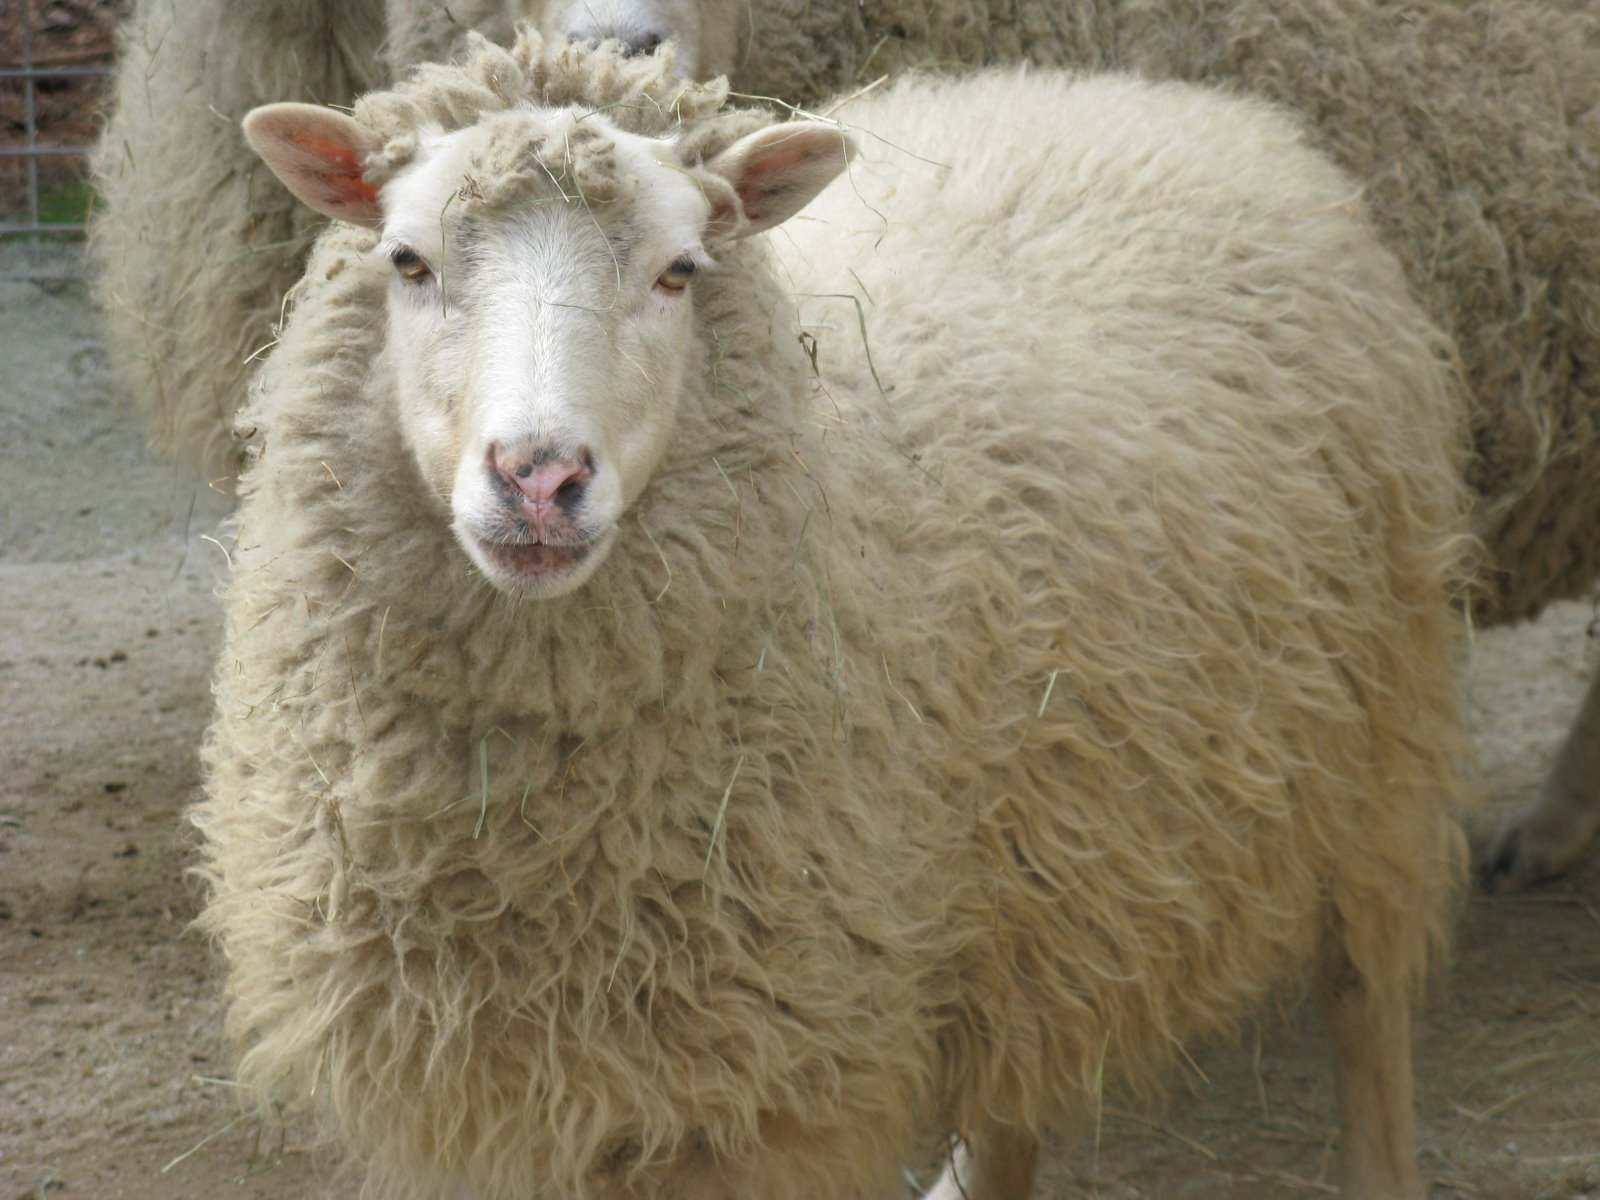 Sheep - 05 photo